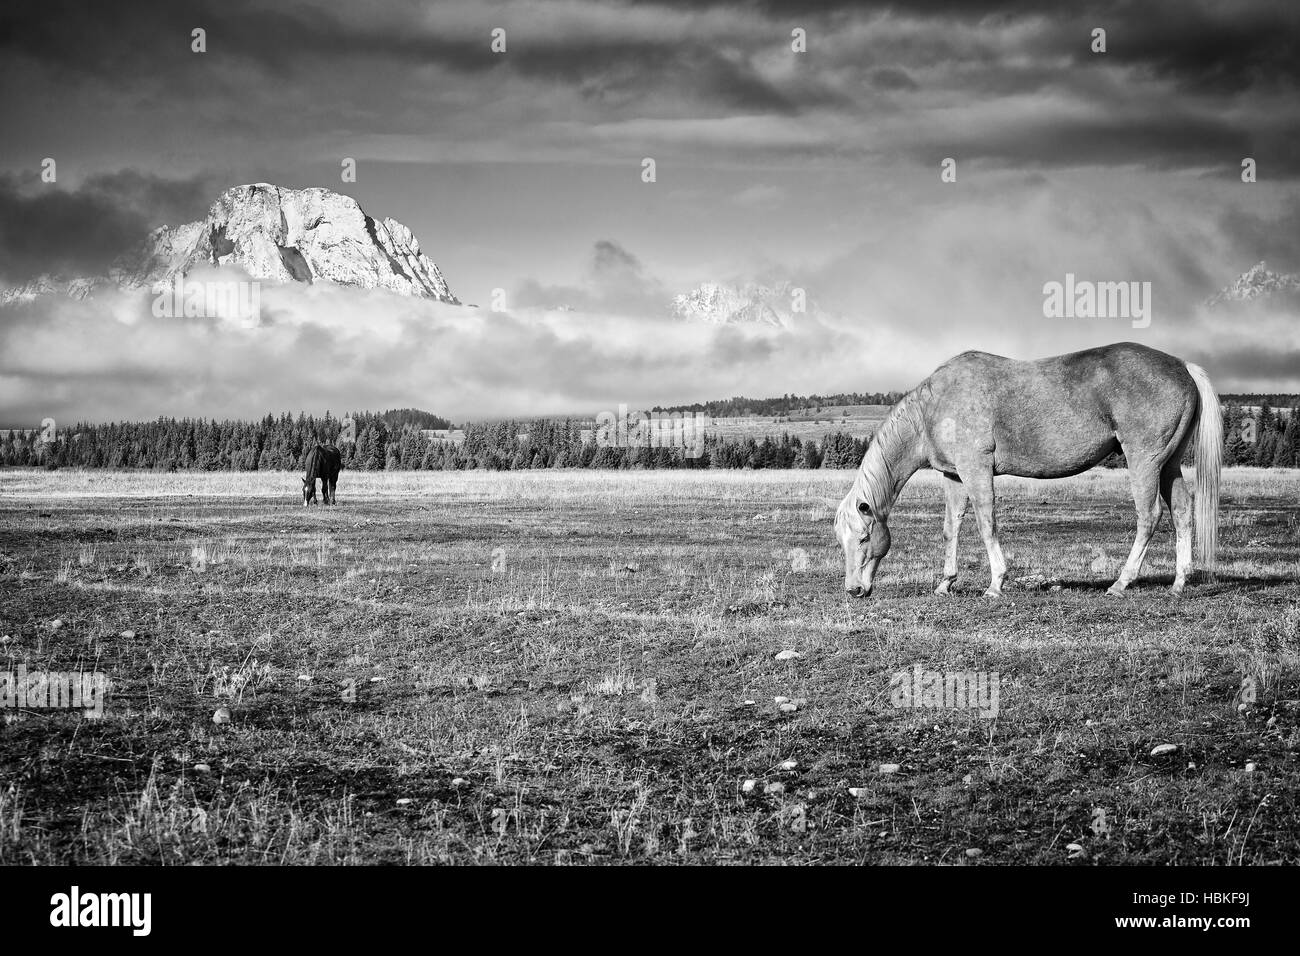 Black and white photo of grazing horses, Wyoming, USA. - Stock Image